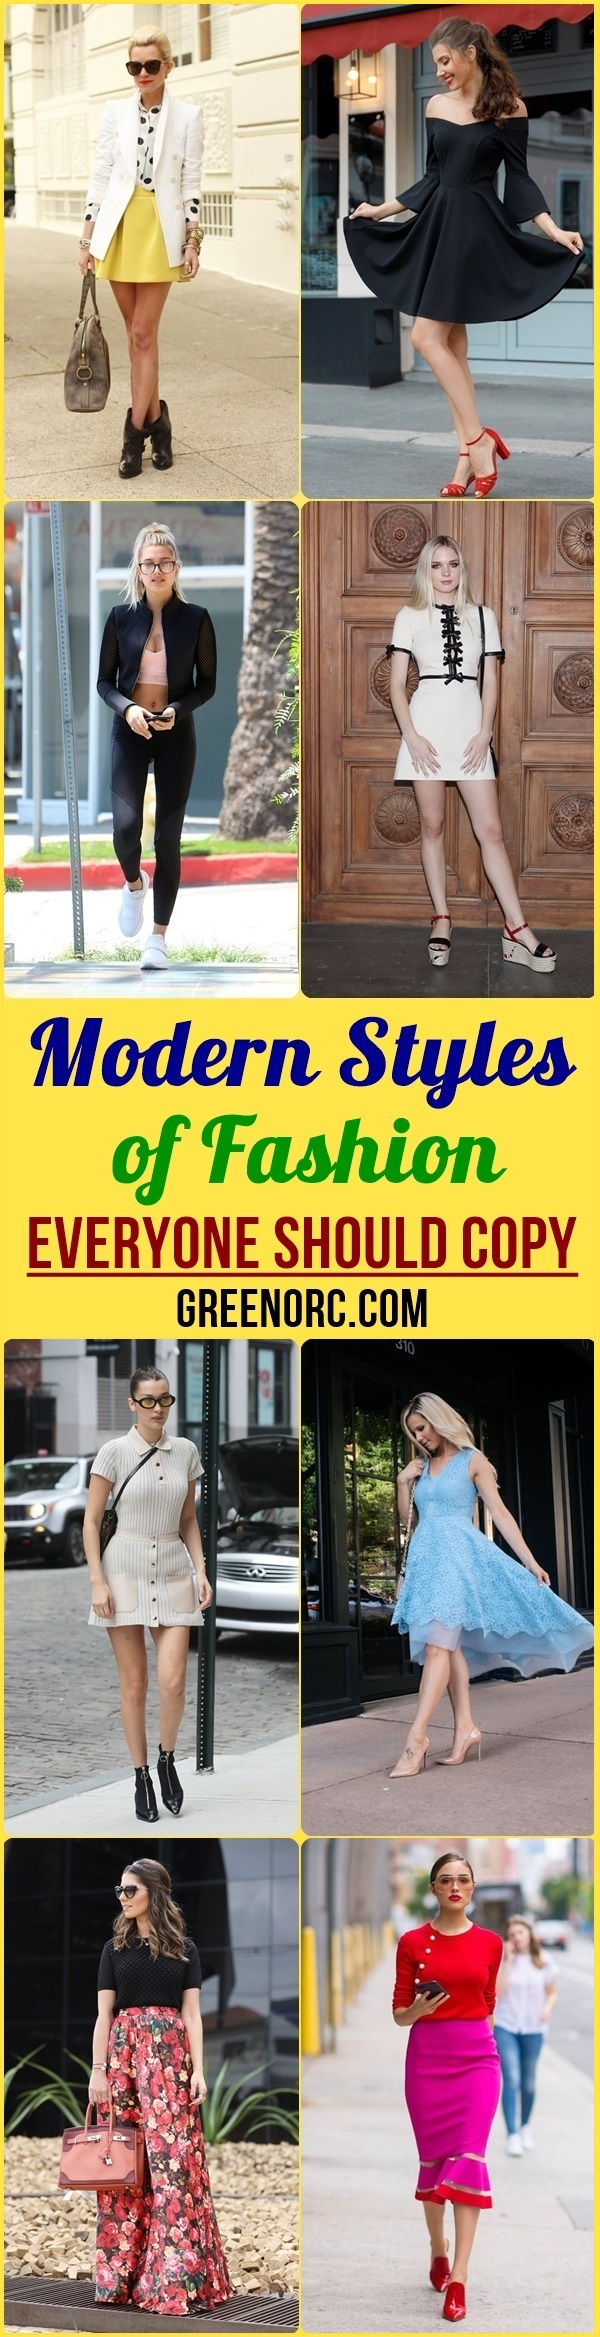 Modern Styles of Fashion Everyone Should Copy